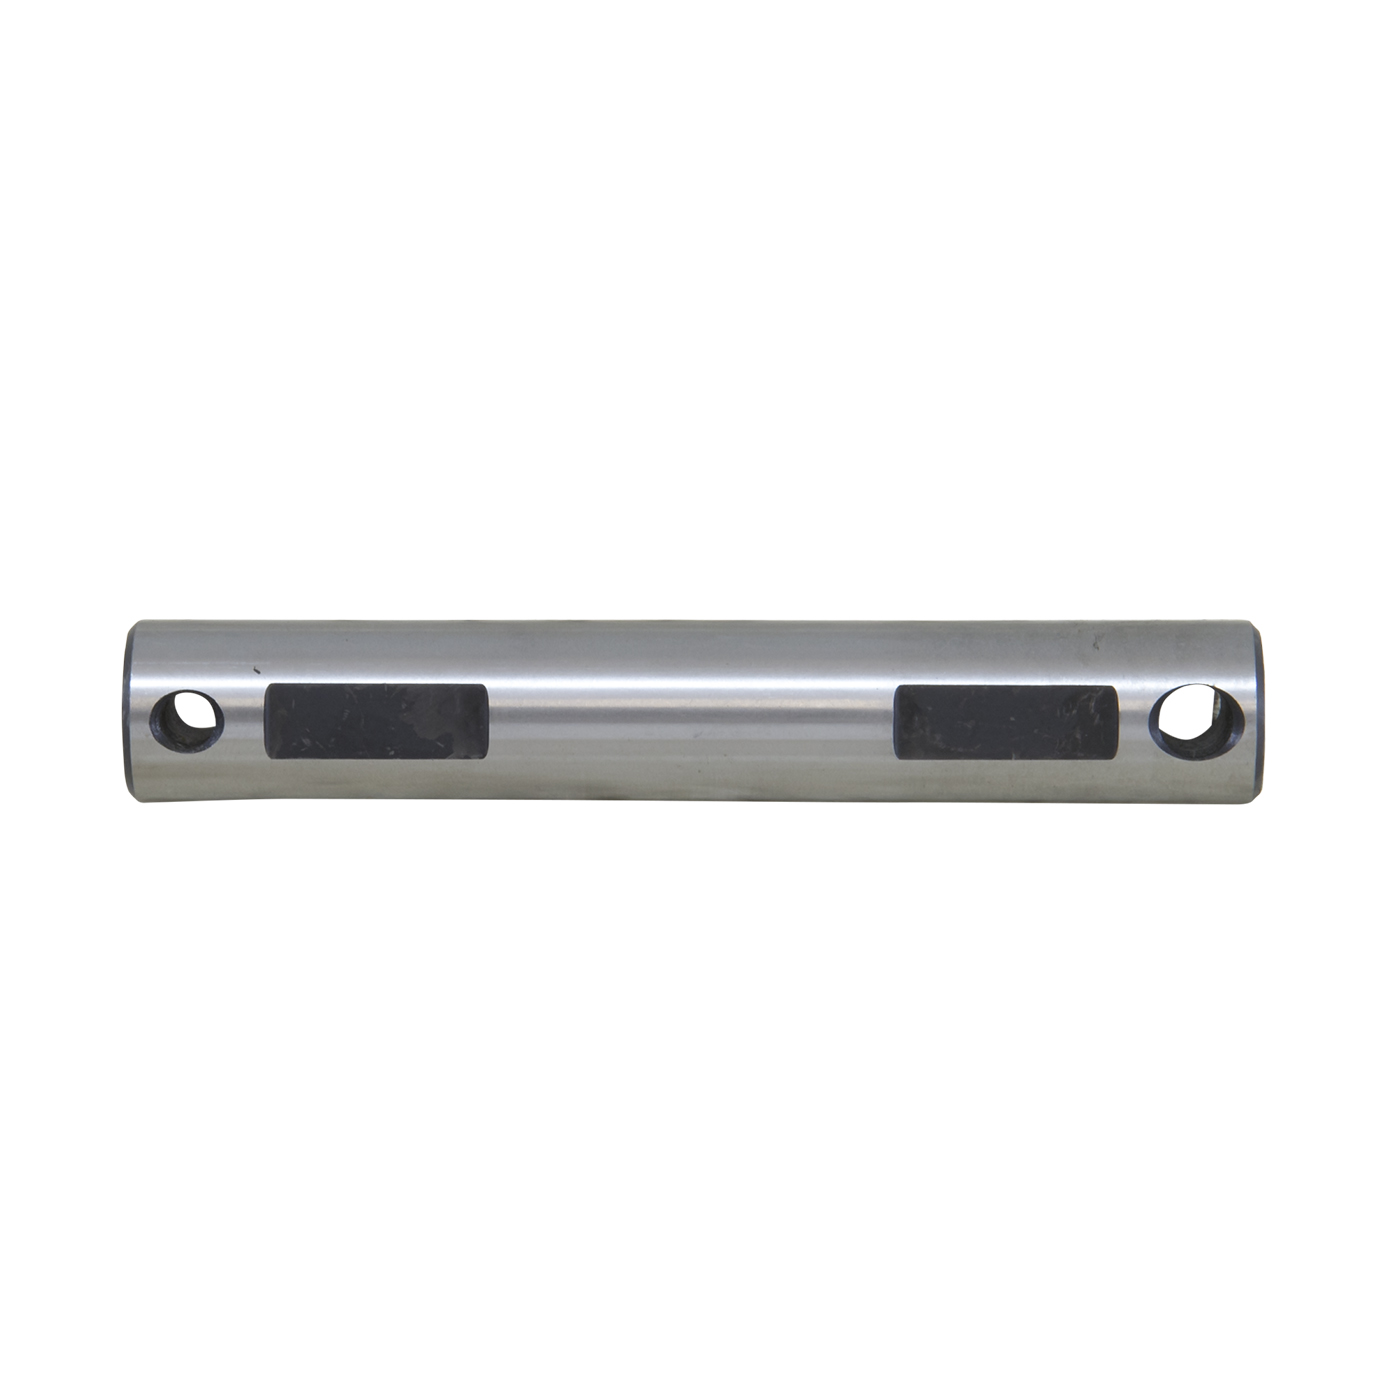 YSPXP-017 - Model 35 Standard Open Cross Pin, BLT Design, 0.685